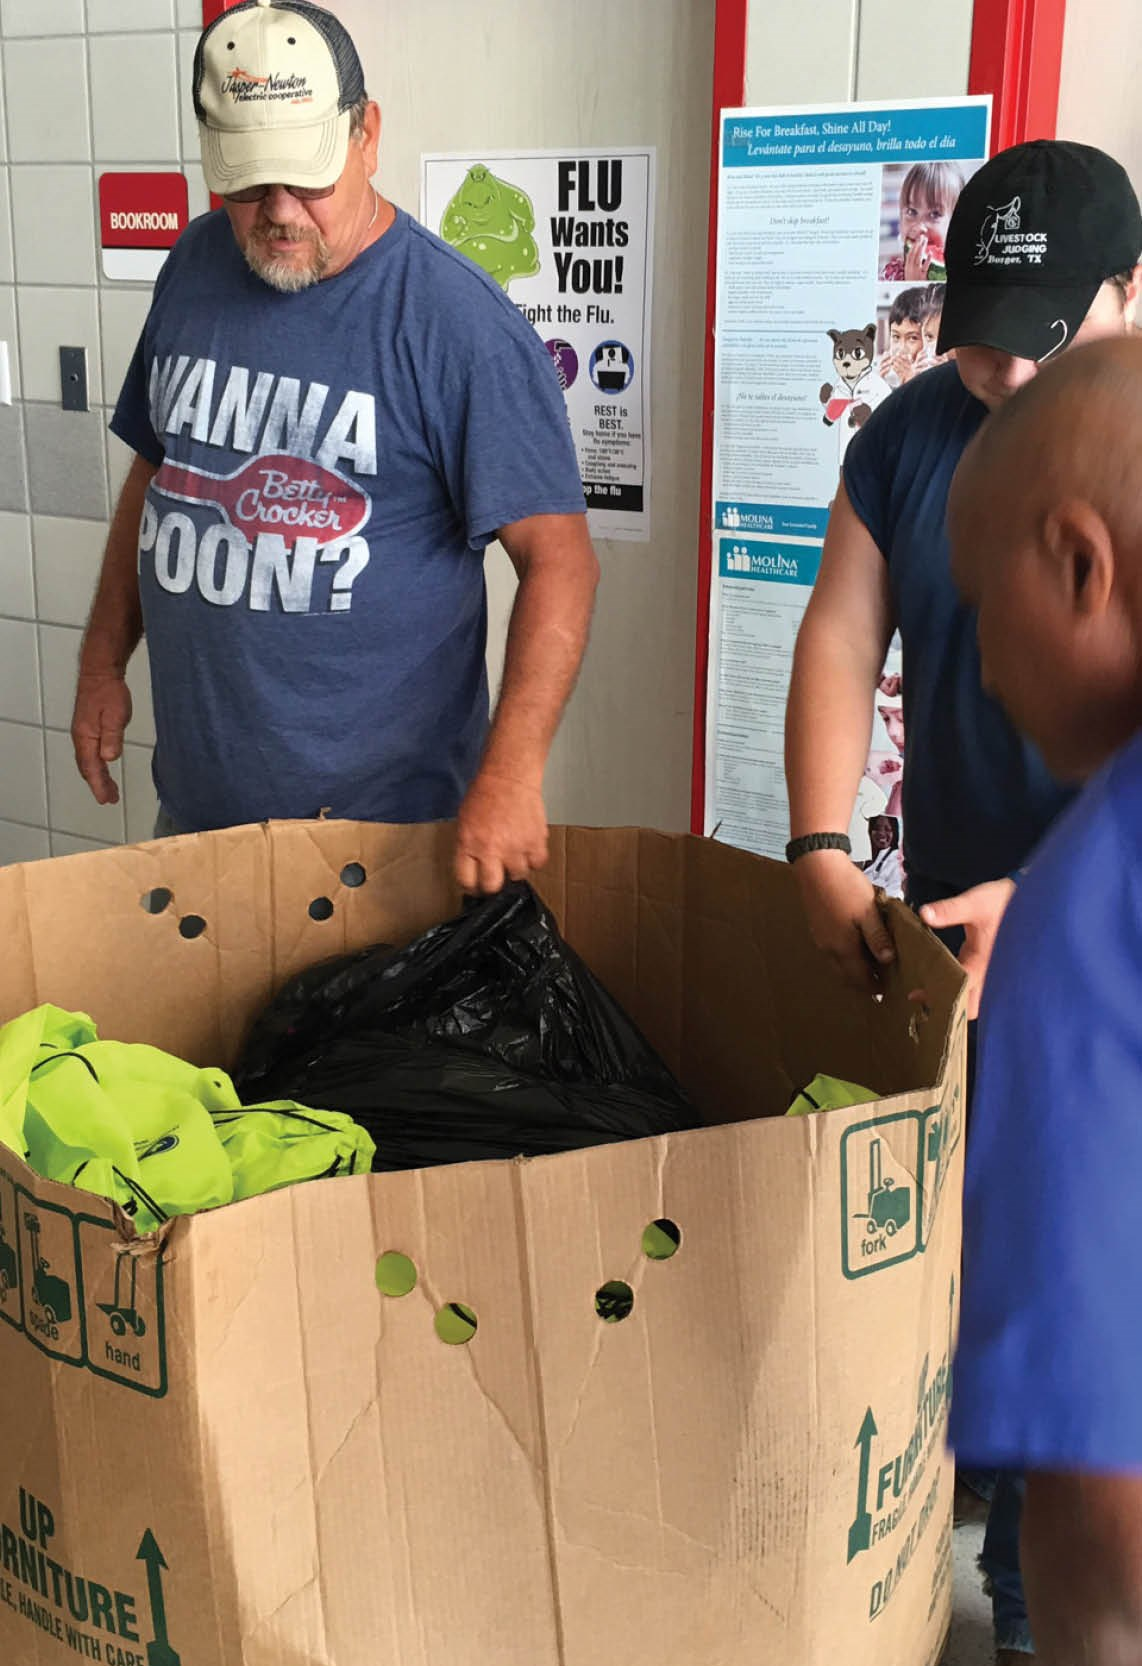 unloading donations from a box